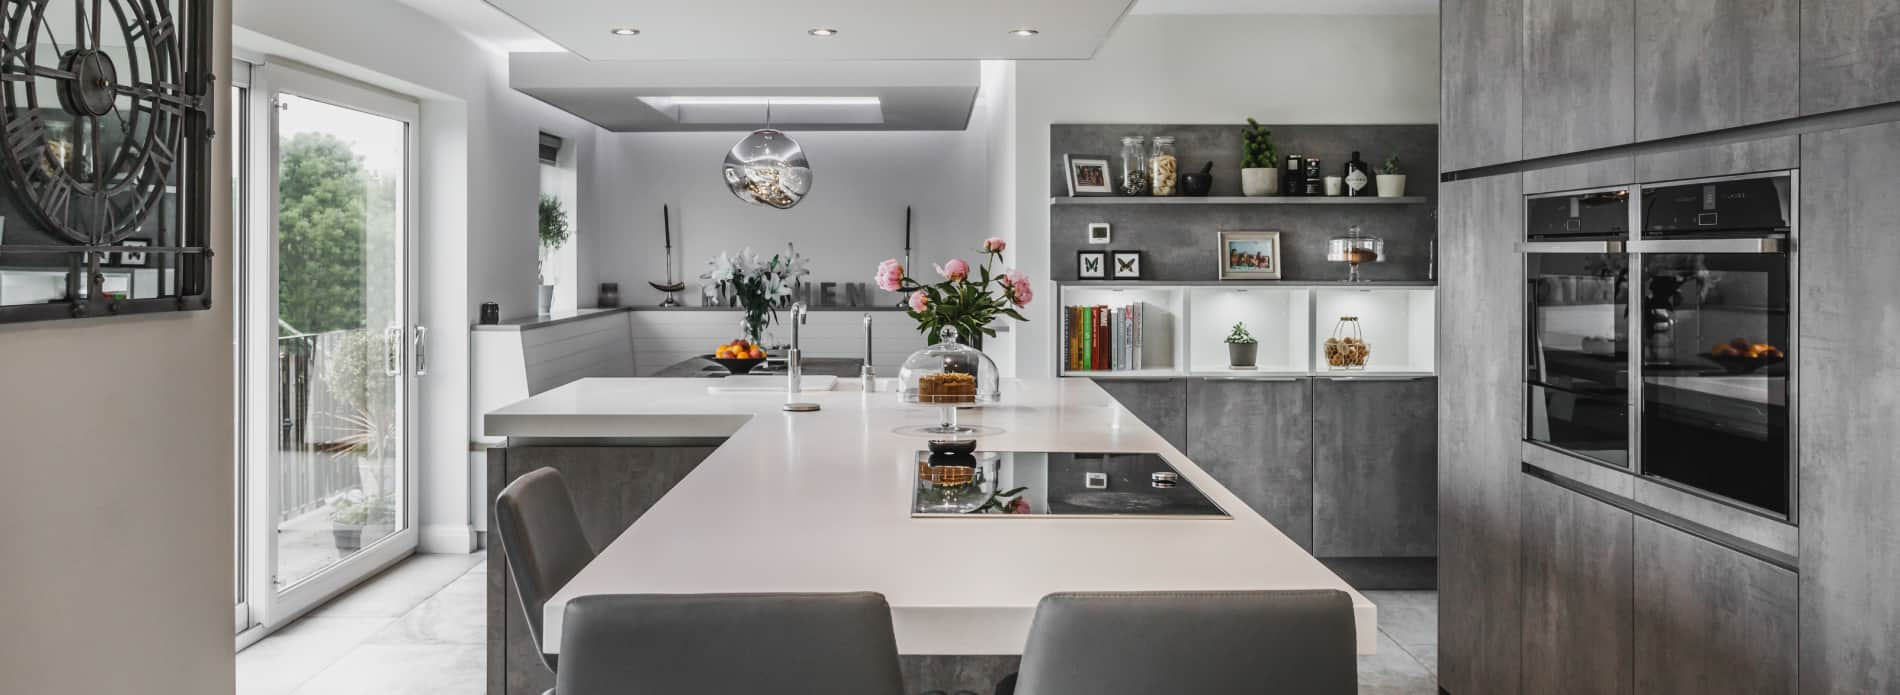 A Totally Reinvented Space For A Busy Family